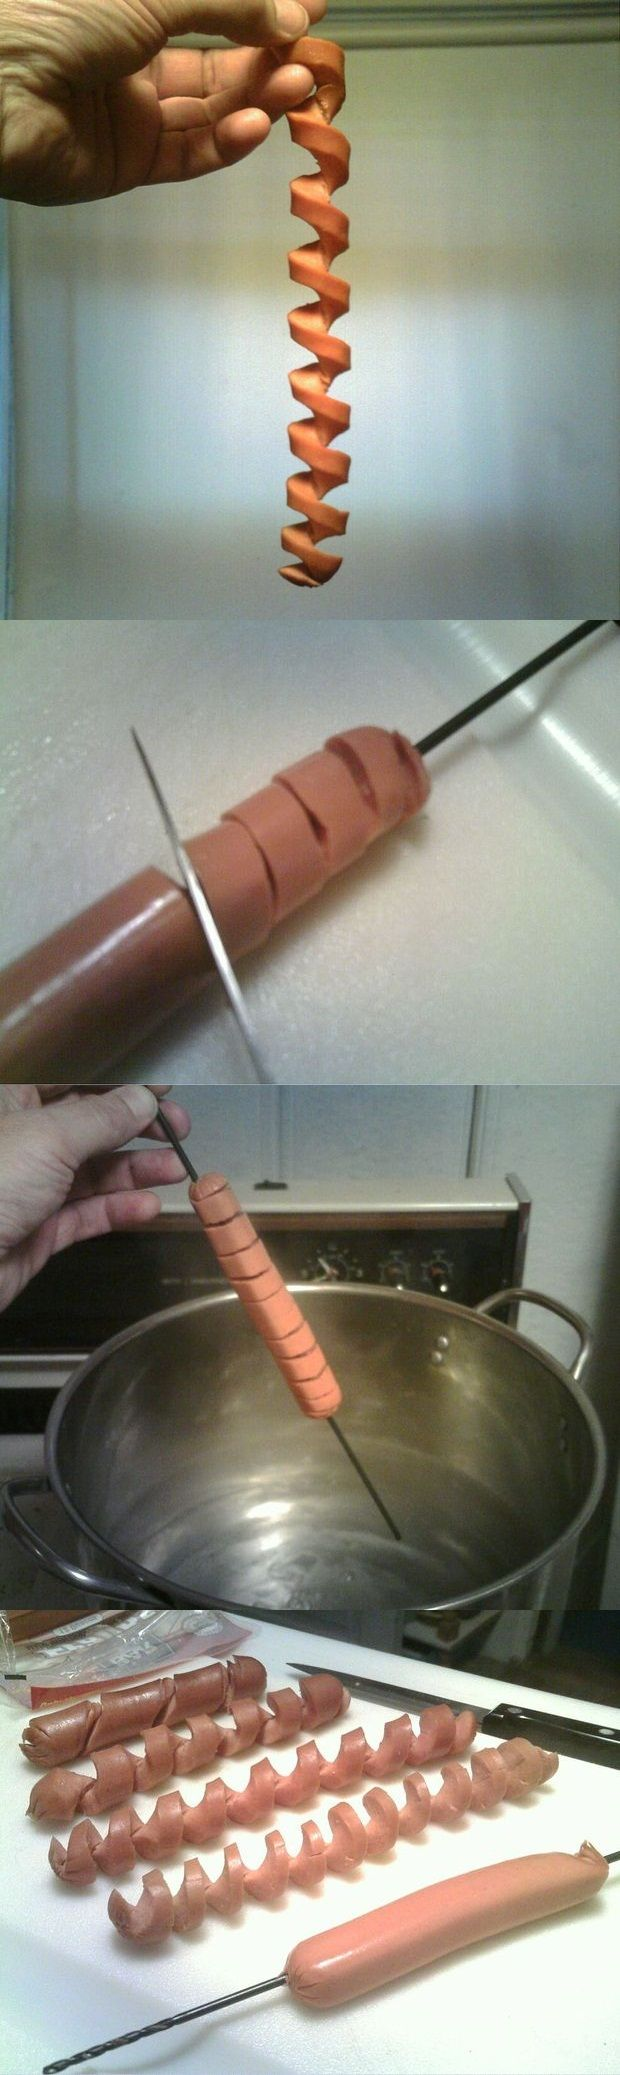 Spiral Cut Hot Dog...